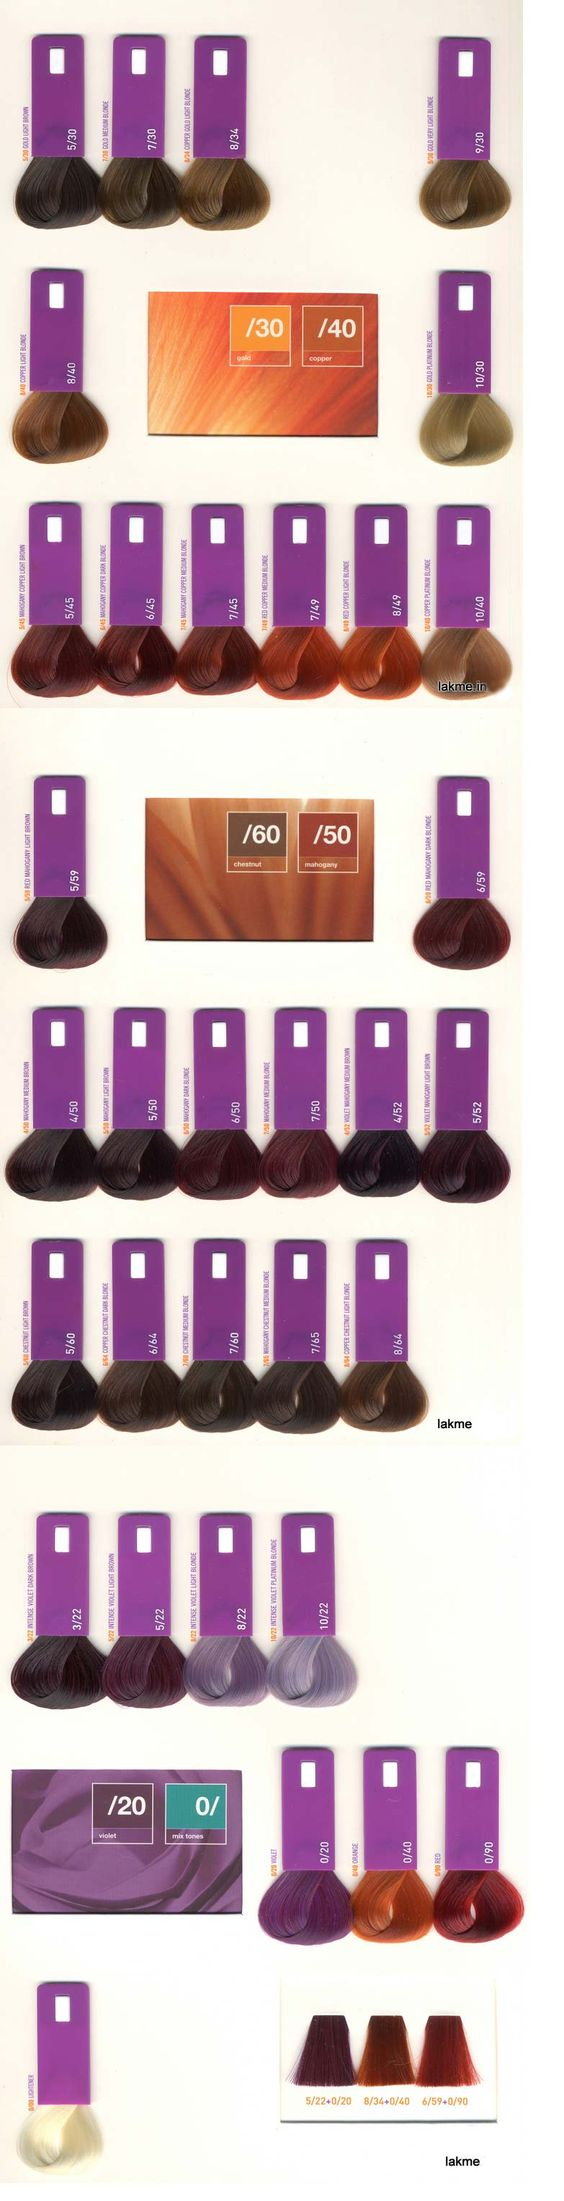 Redken chromatics permanent hair color chart popular hair color redken hair dye color chart image collections exle ideas nvjuhfo Choice Image